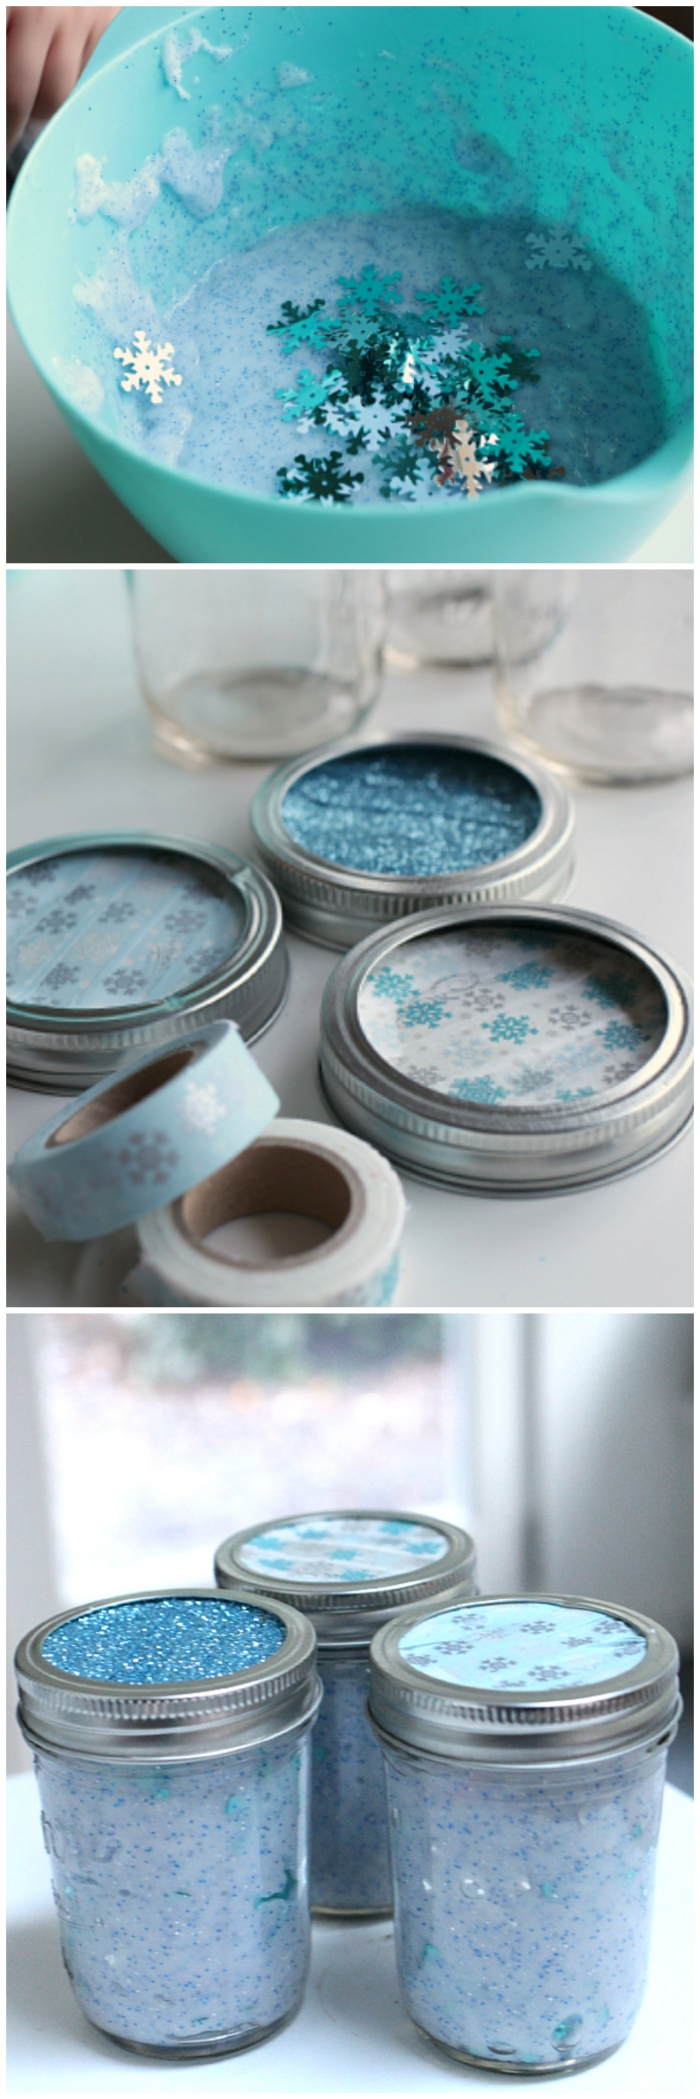 frosty blue slime, with glitter and snowflake-shaped confetti, in different shades of blue, mixed in a turquoise plastic bowl, and poured into three jars